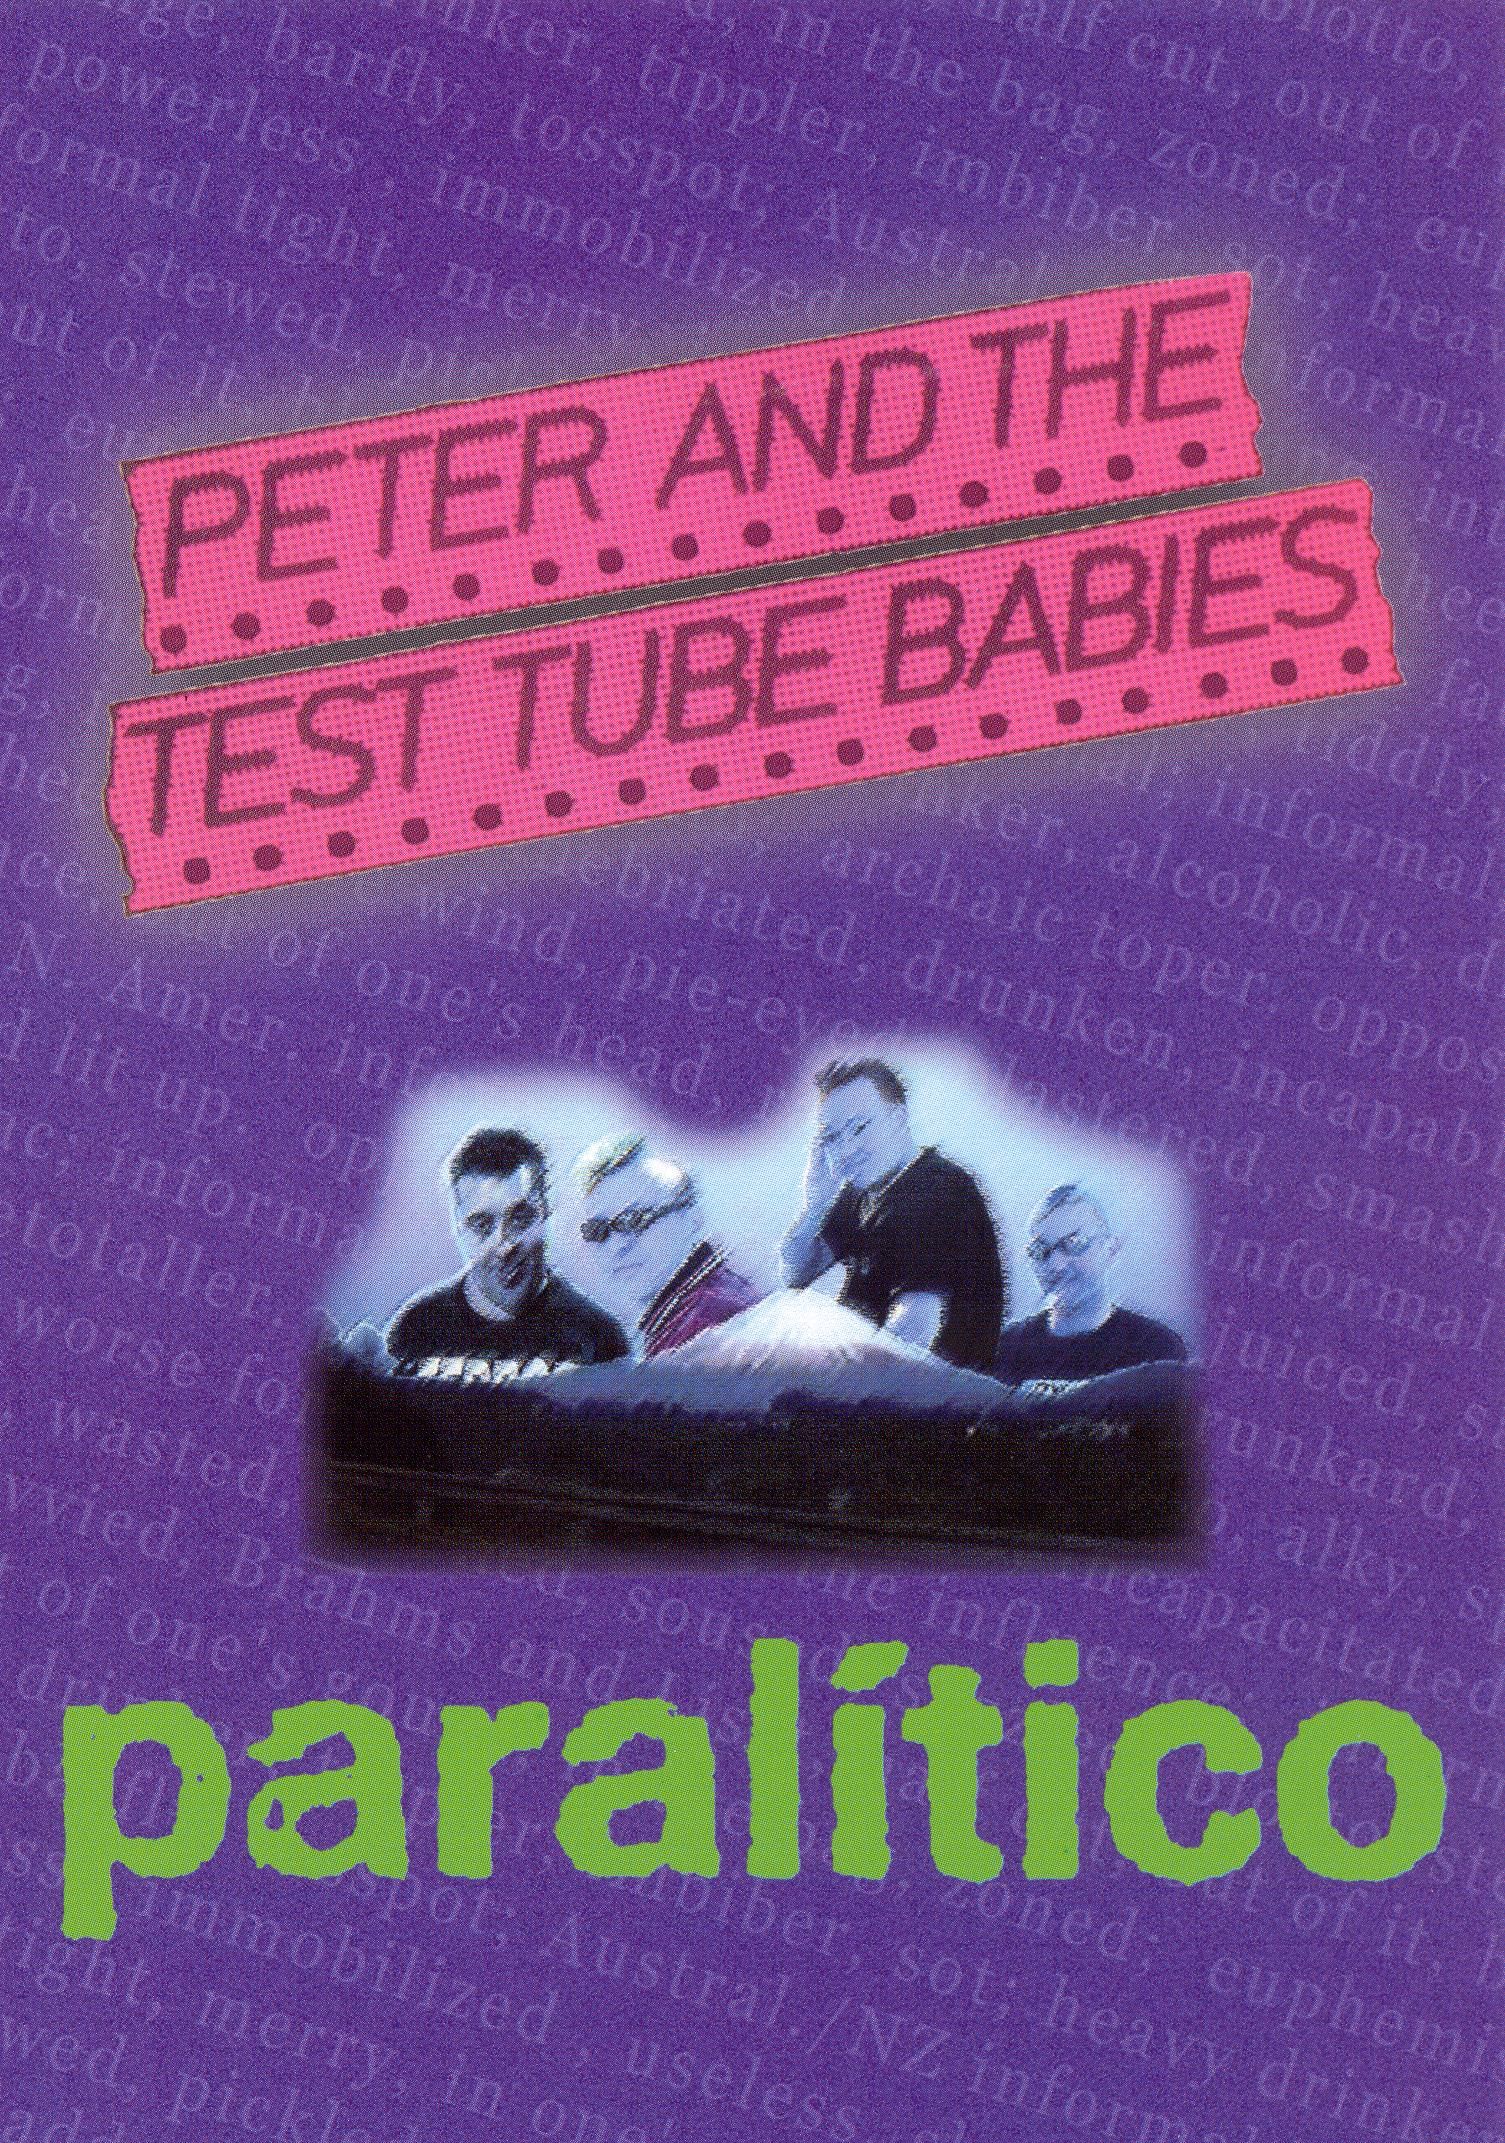 Peter and the Test Tube Babies: Paralitico